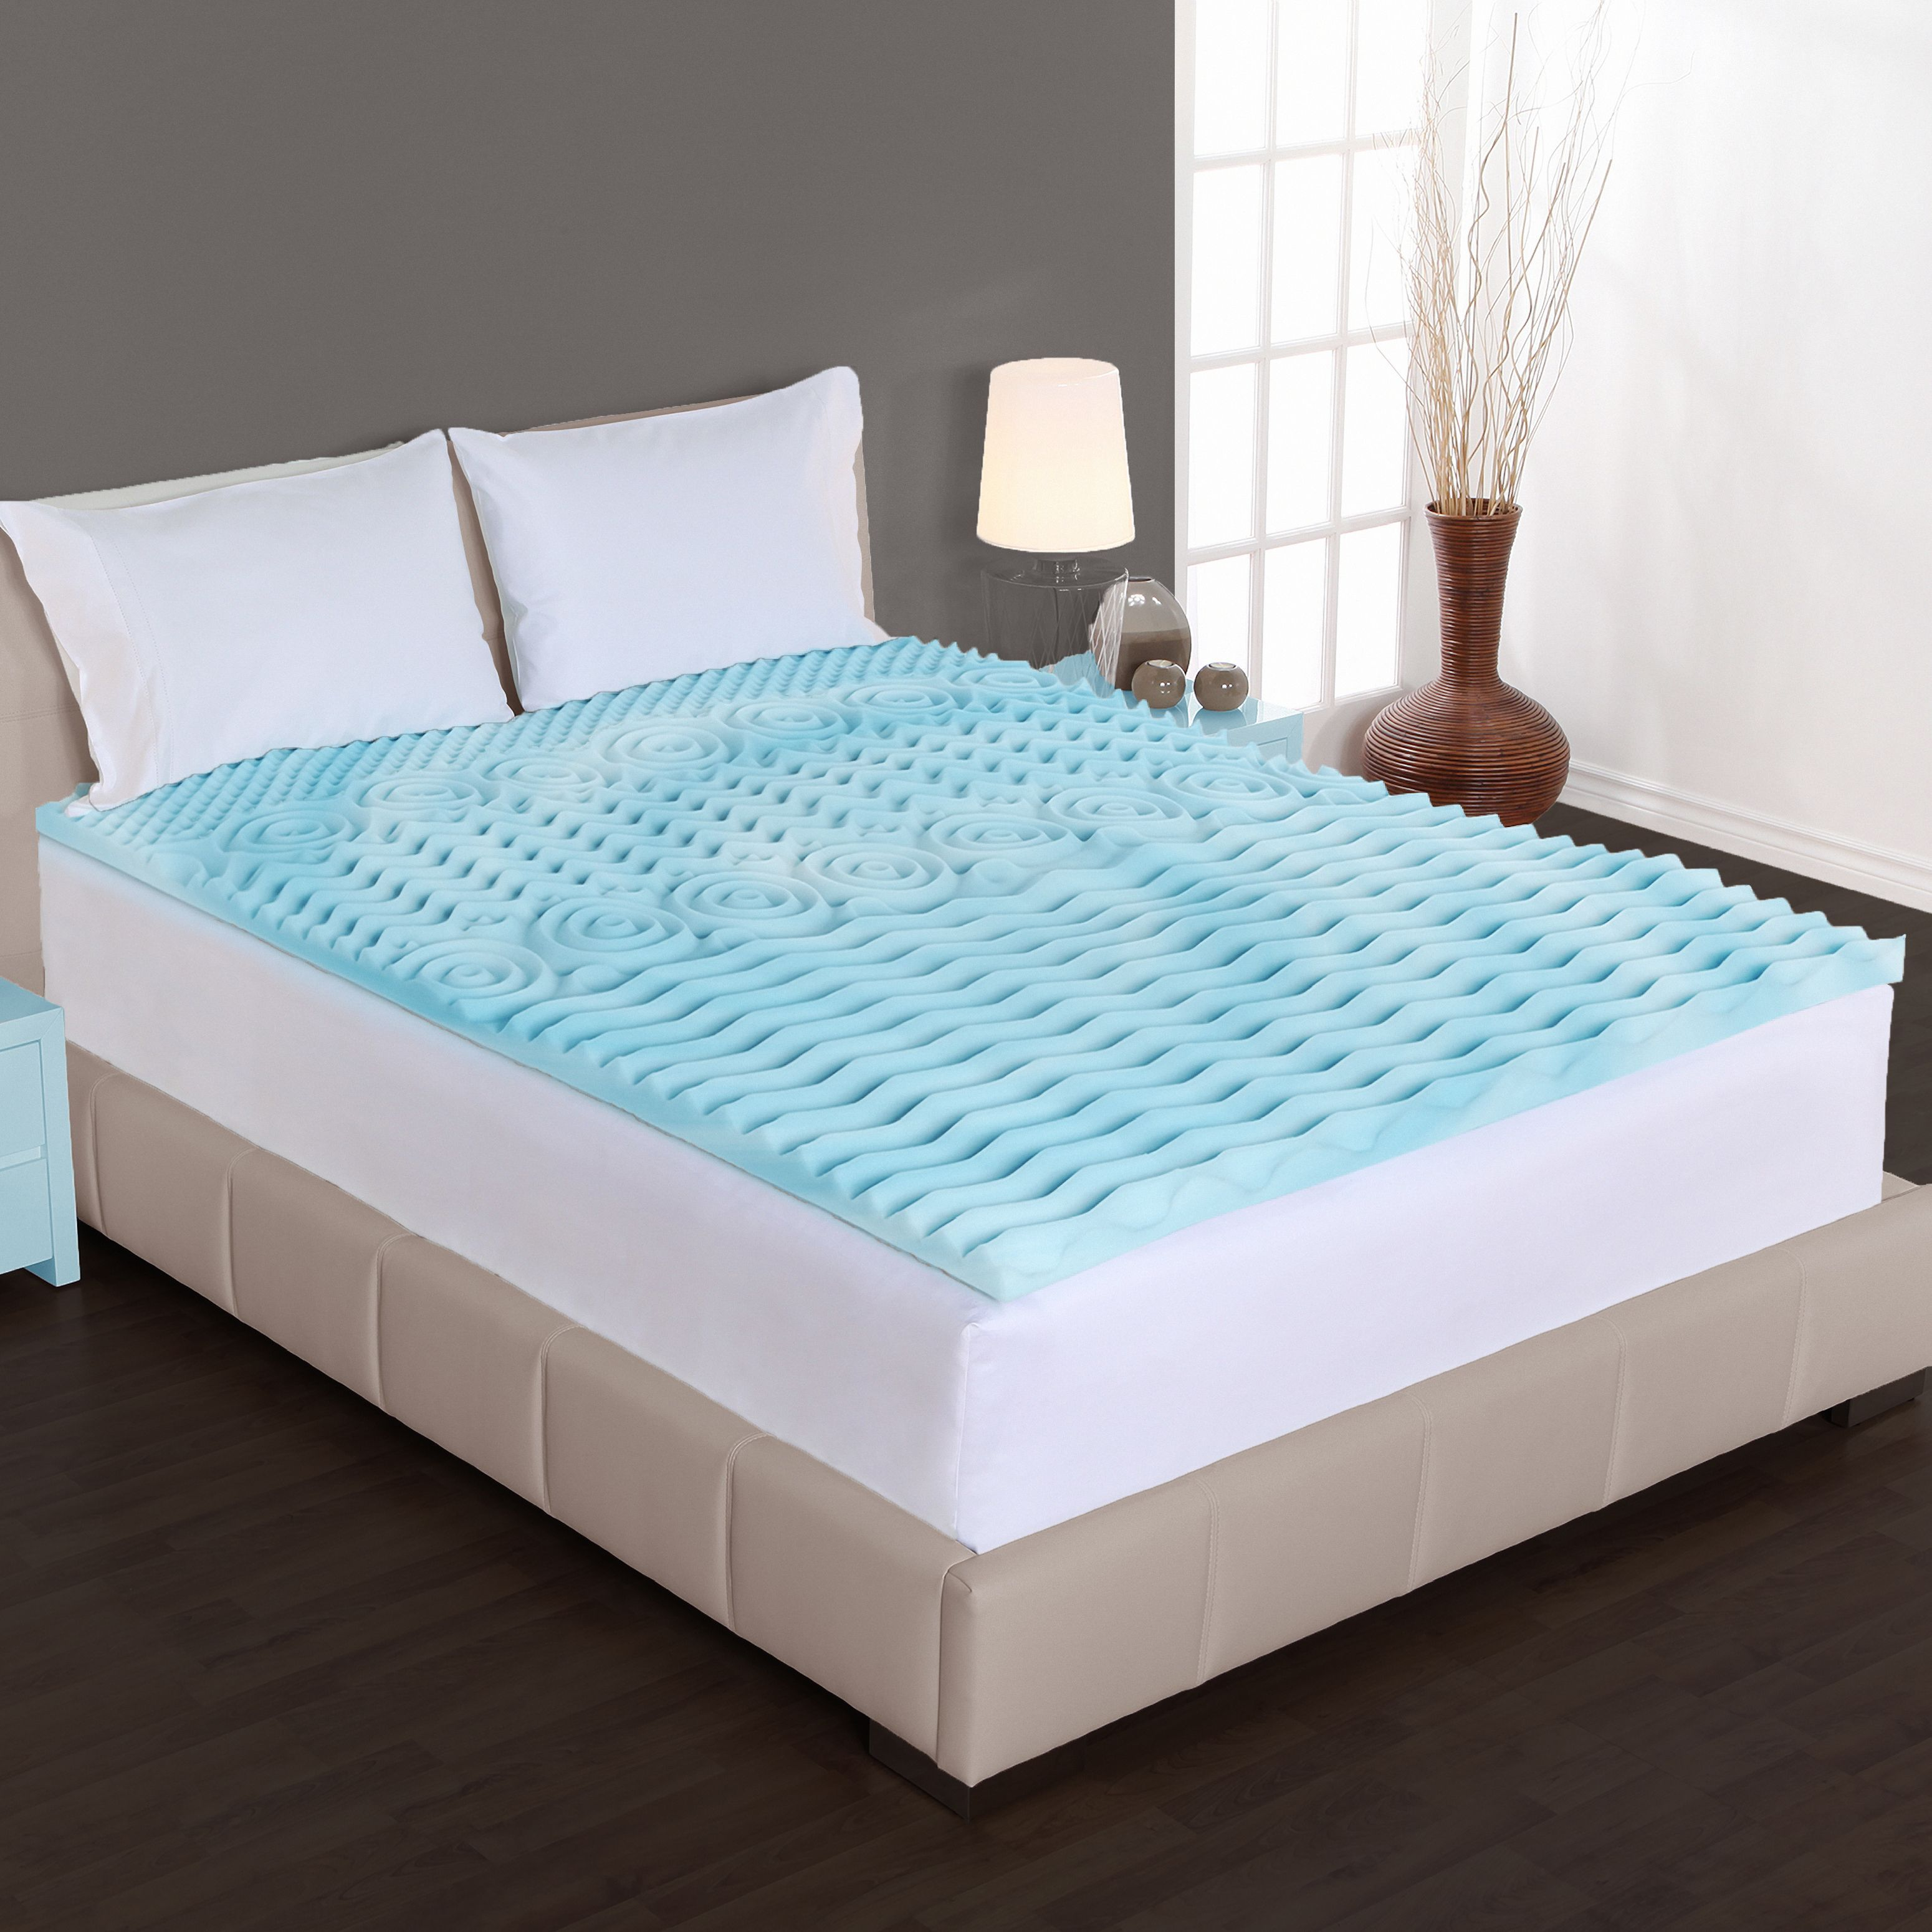 this dream form mattress topper is composed of comfortable gel foam